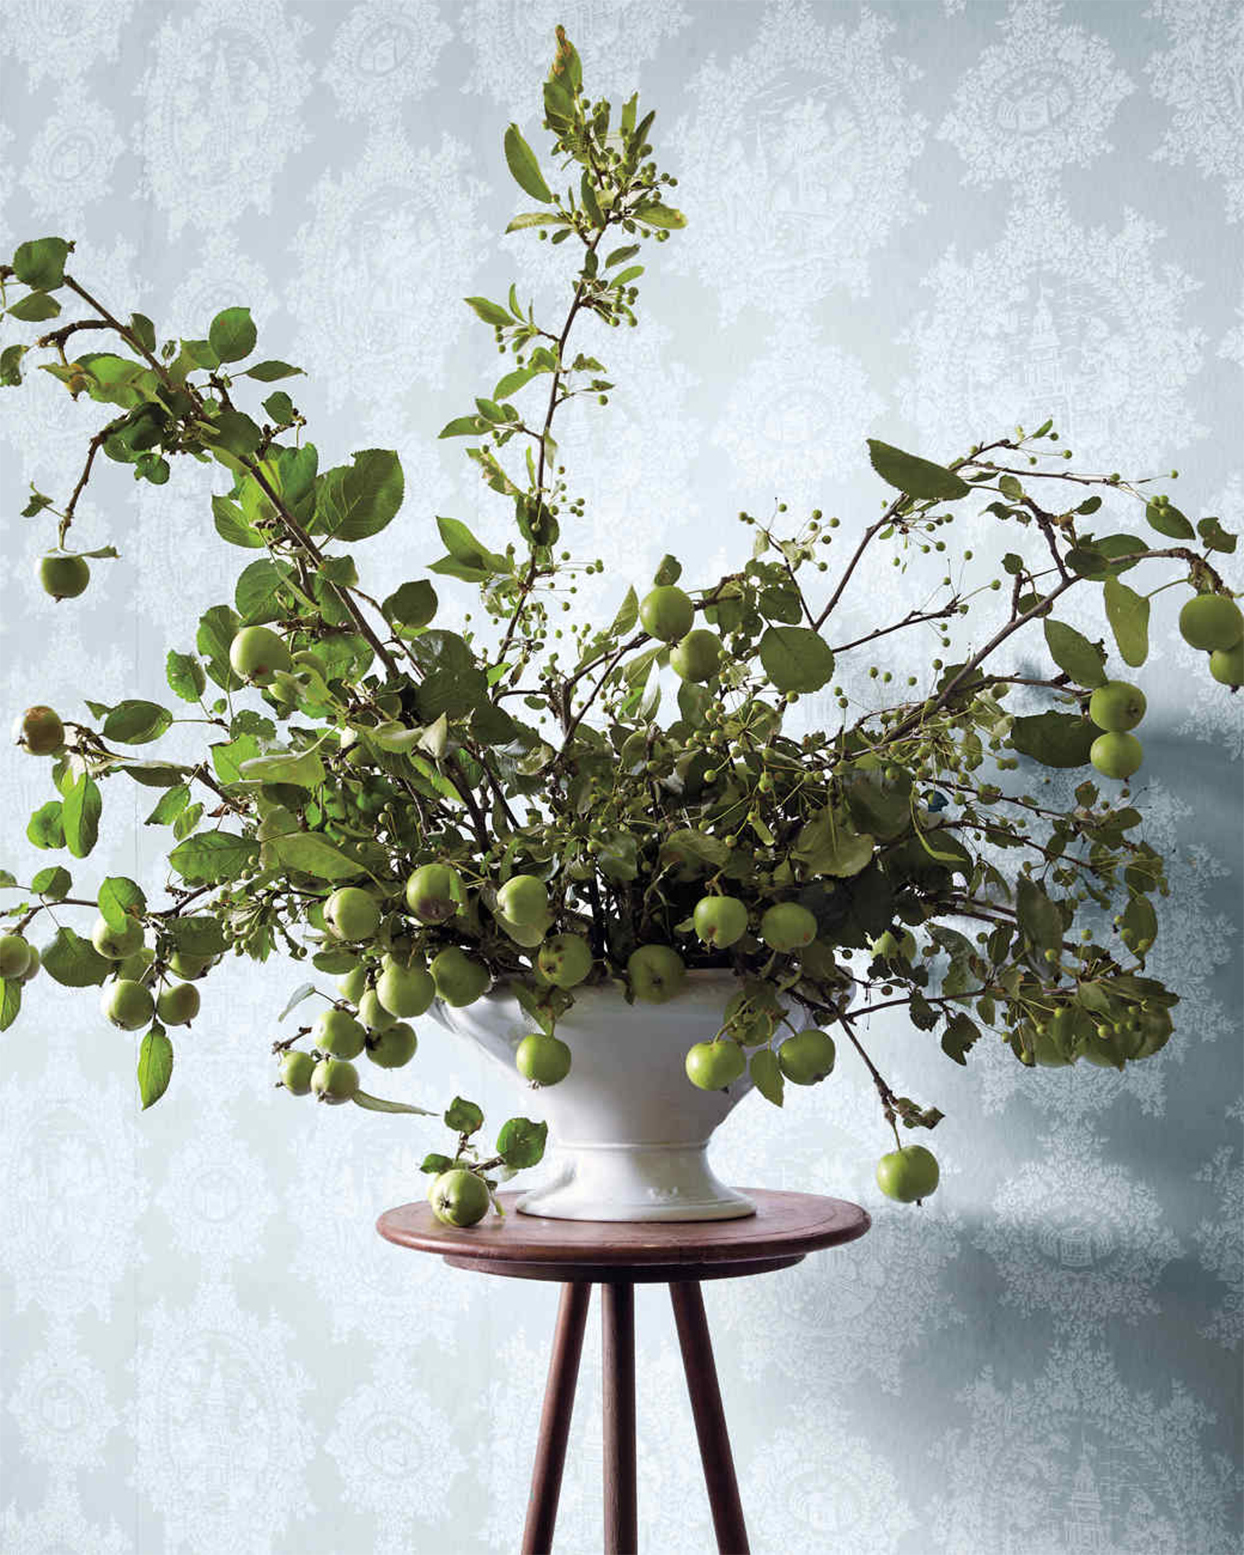 green apples and branches arranged in a white vase